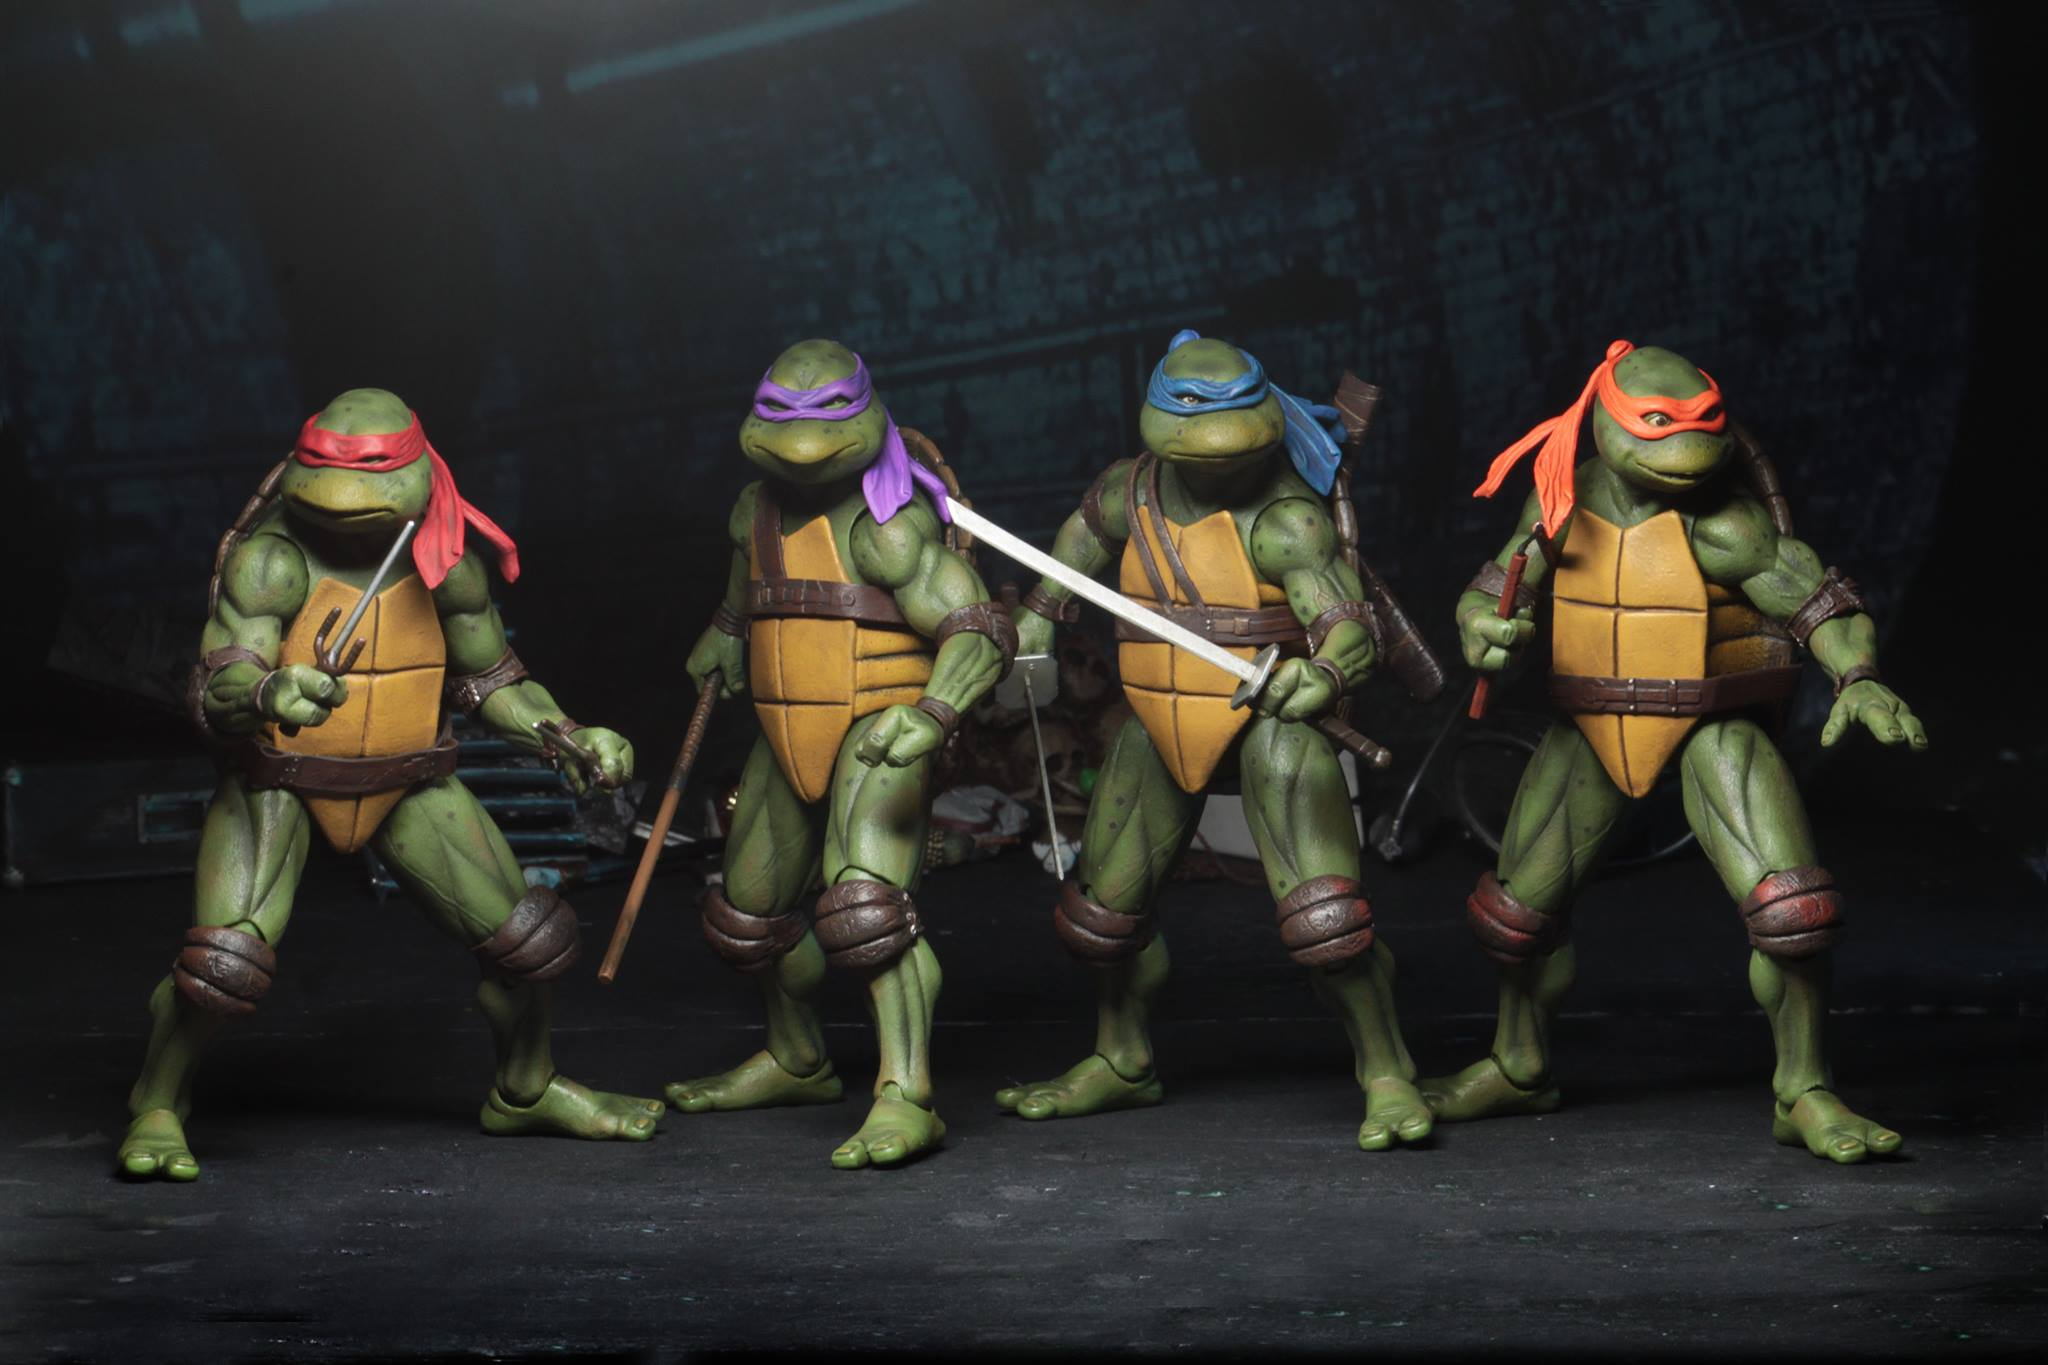 Neca Unveils An Awesome Line Of Teenage Mutant Ninja Turtles 1990